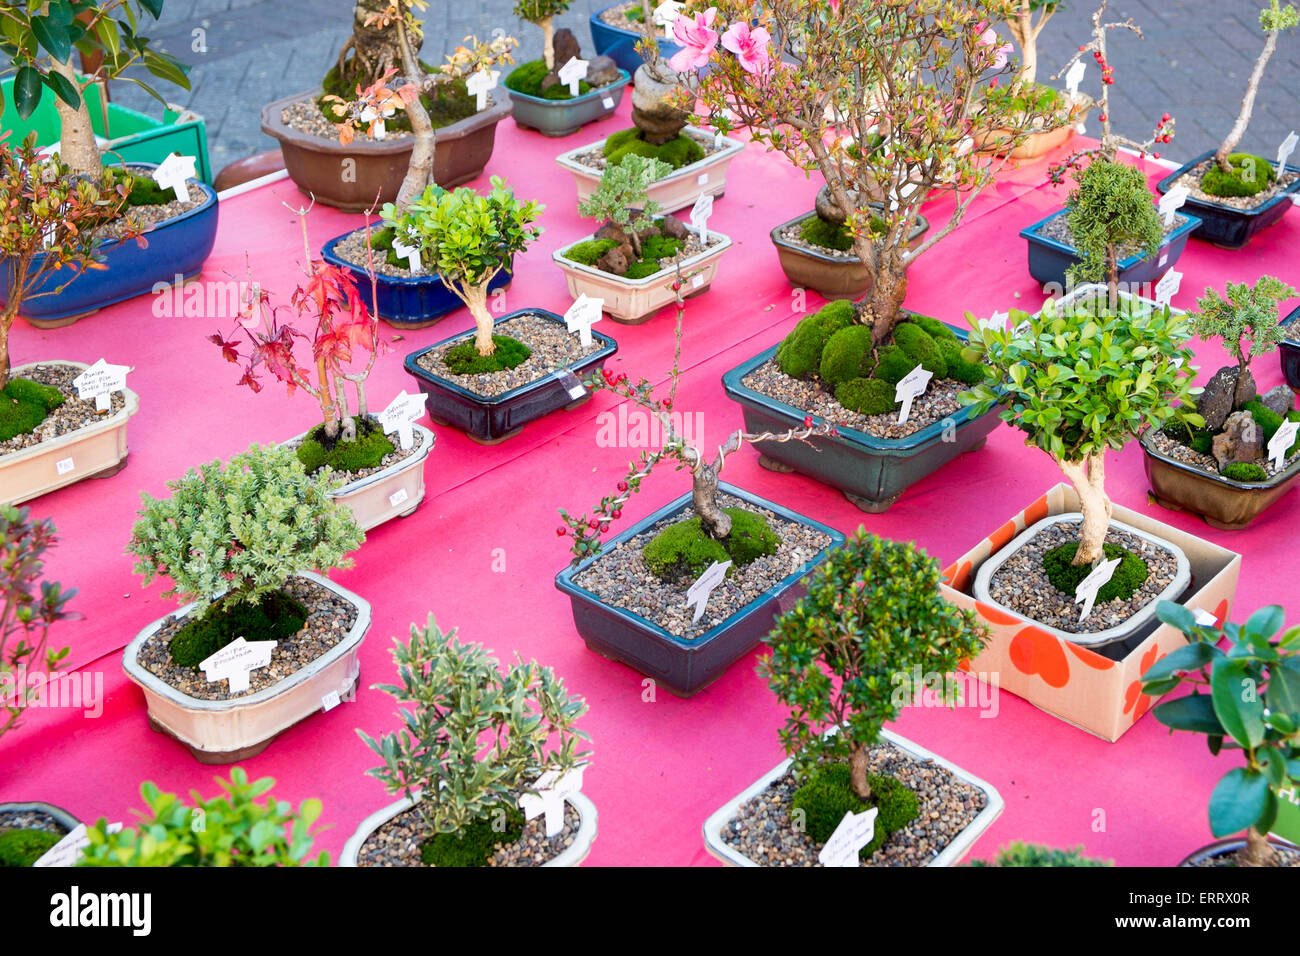 bonsai trees and plants in pots for sale on a market stall in stock photo royalty free image. Black Bedroom Furniture Sets. Home Design Ideas